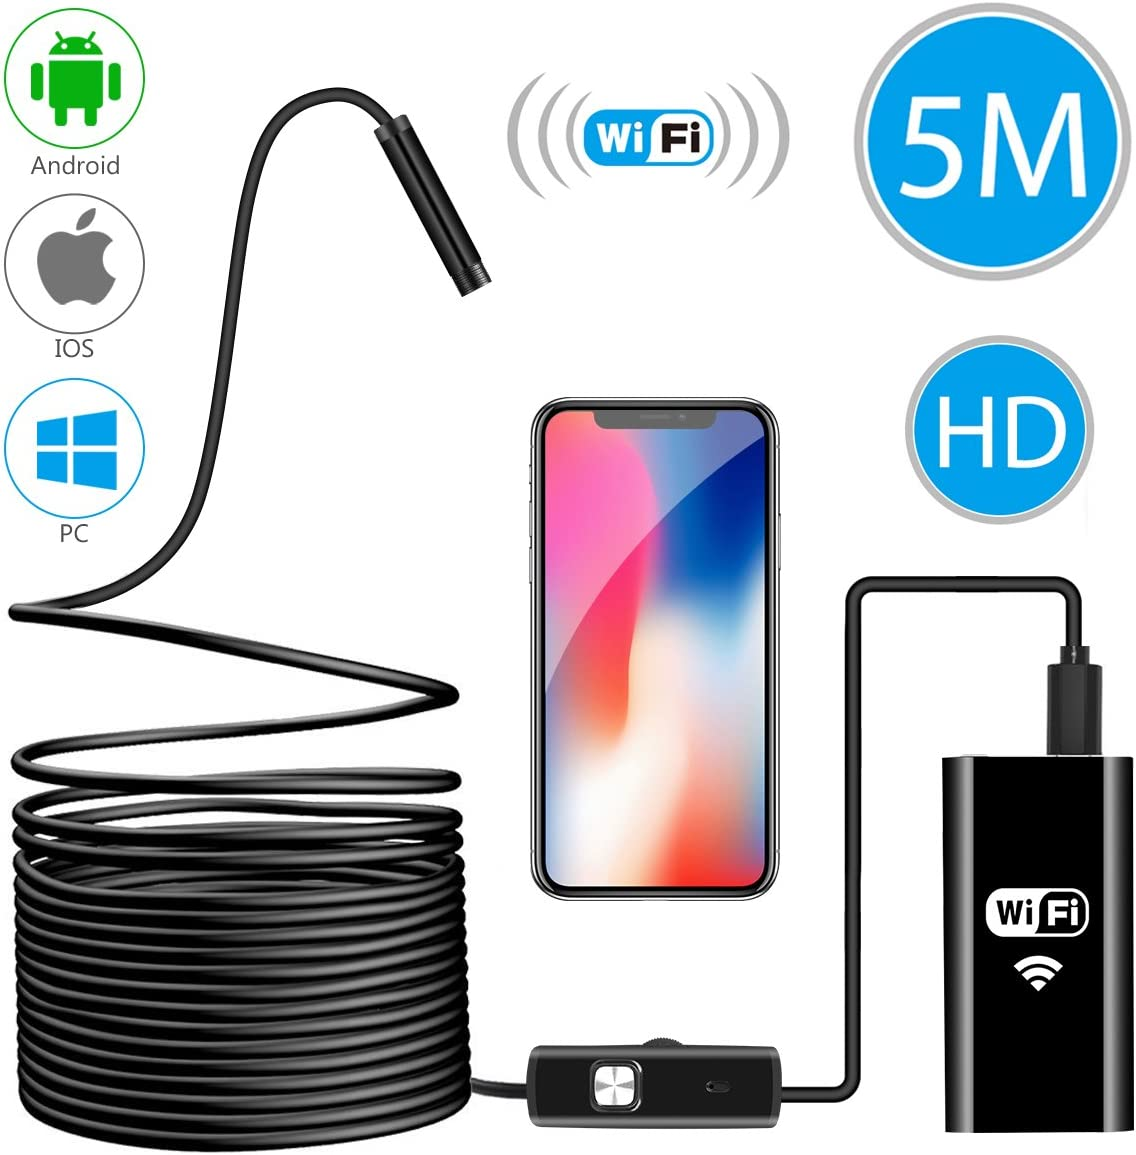 Upgrade IP68 Waterproof Wireless Inspection Camera with Light Windows 11.5FT iPhone Samsung MAC 1200P HD Semi-rigid Snake Borescope for Android and IOS Wireless Endoscope Camera Laptop